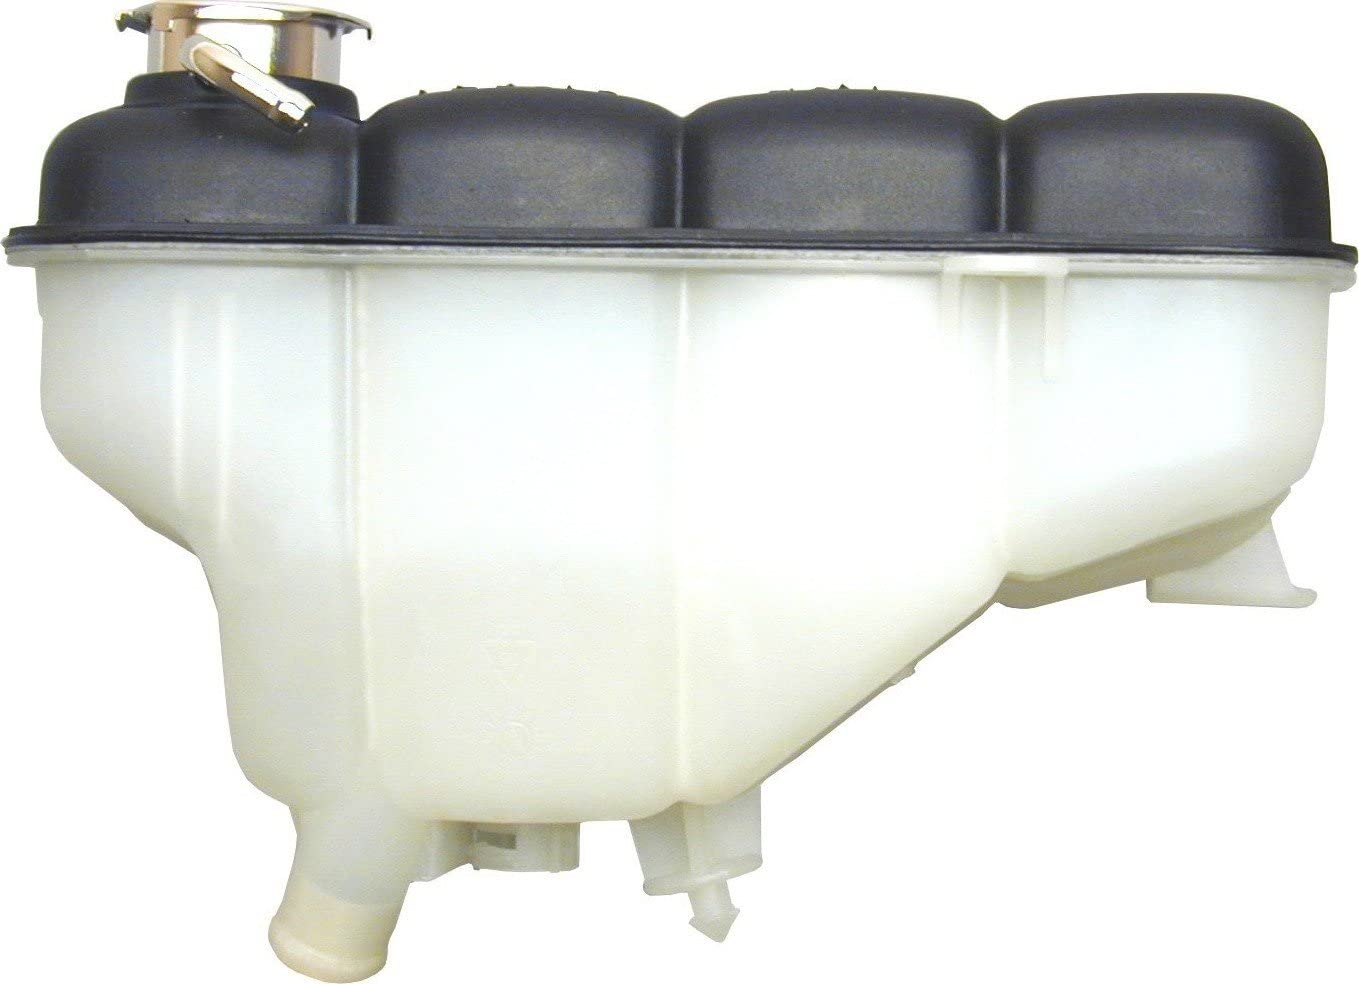 Engine Coolant Recovery Tank URO Parts 2025000249